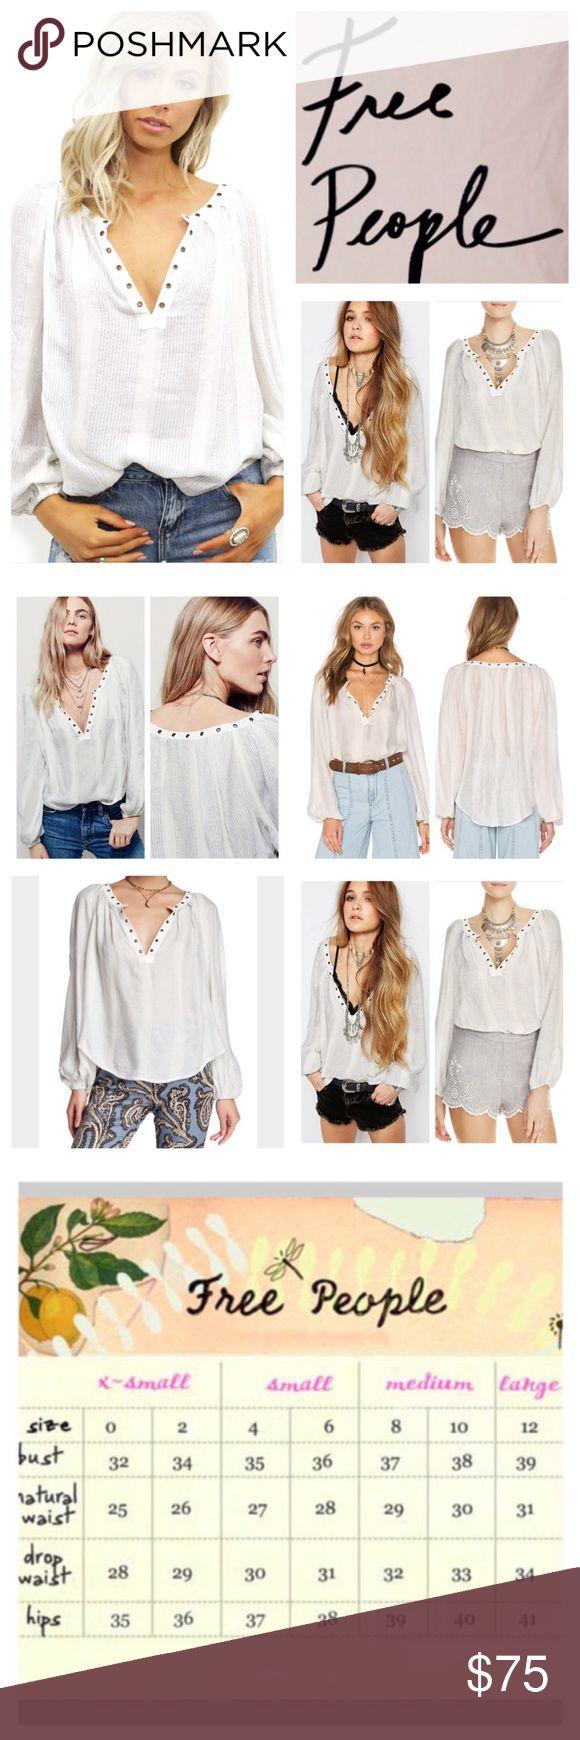 """Free People Against All Odds Top.  NWT. Free People Against All Odds Top, 64% rayon, 22% polyester, 11% polyester, 3% metallic, machine washable, 21"""" armpit to armpit (42"""" all around), 16"""" arm inseam, 24"""" length, oversized, sheer blouse features silver metallic stripes, plunging V neckline, metal grommet detailing, long sleeves and gathered elastic cuffs, measurements are approx.  NO TRADES Free People Tops"""